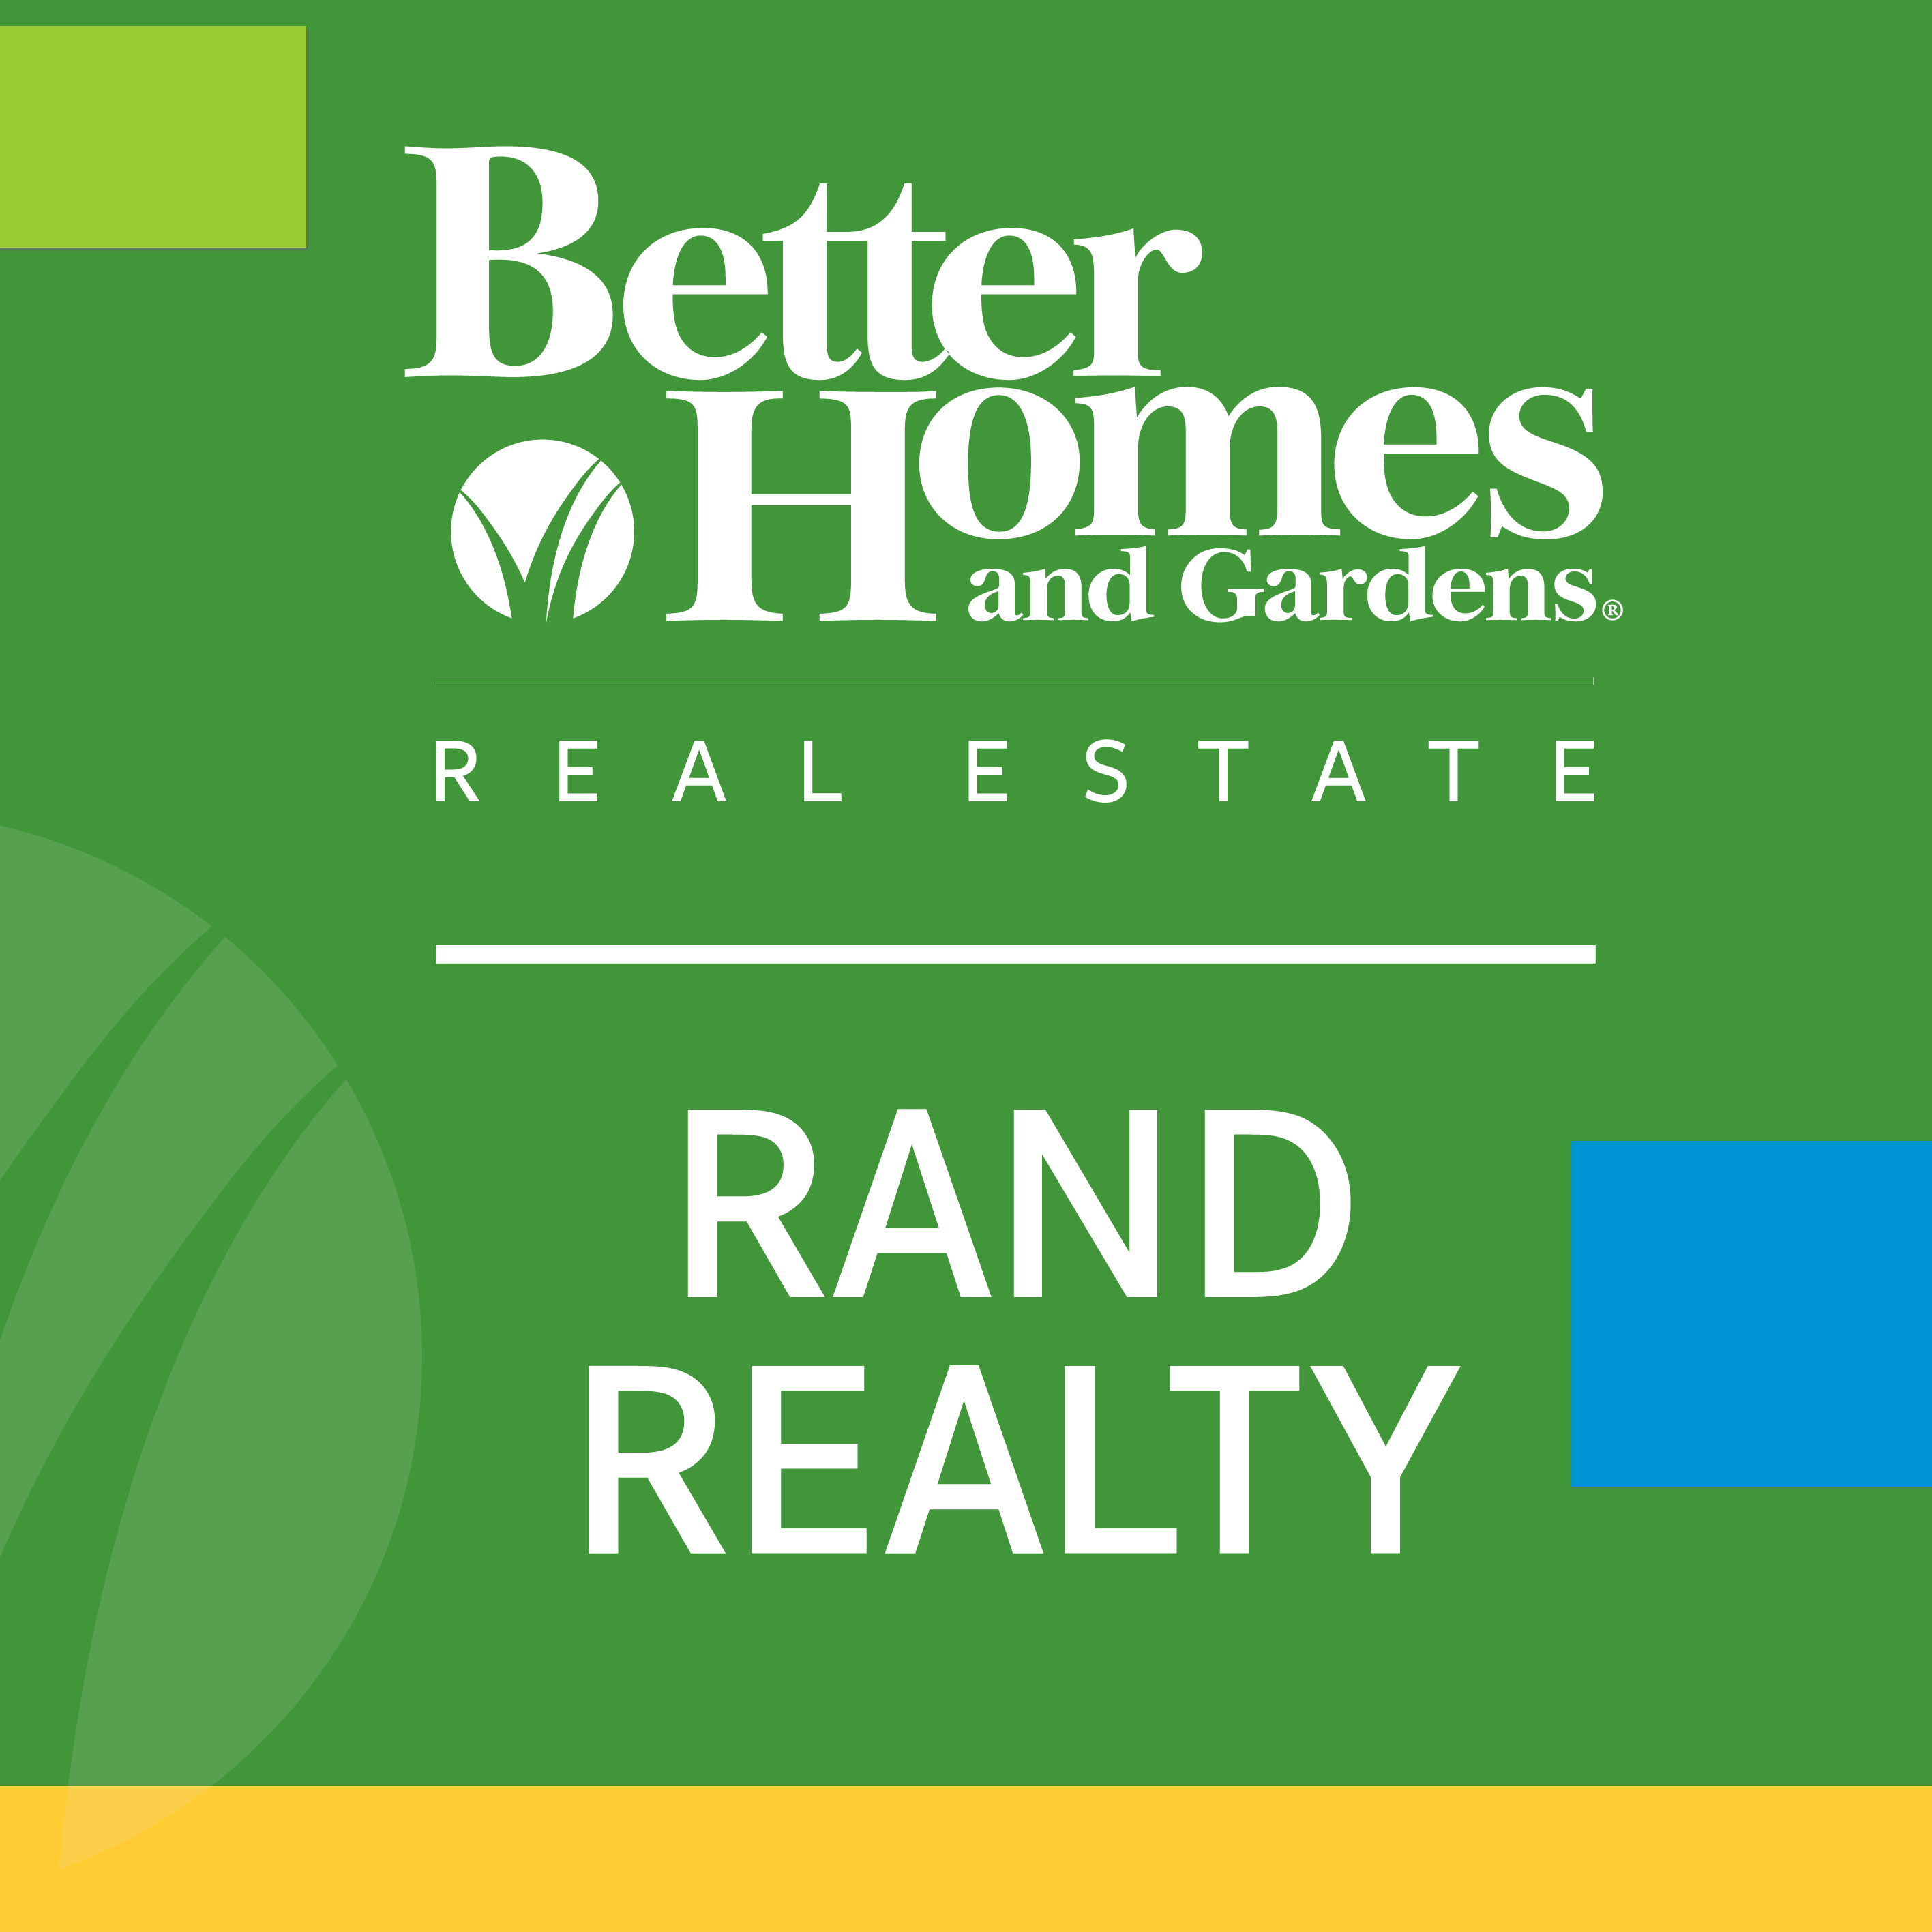 Better Homes and Gardens Rand Realty image 1